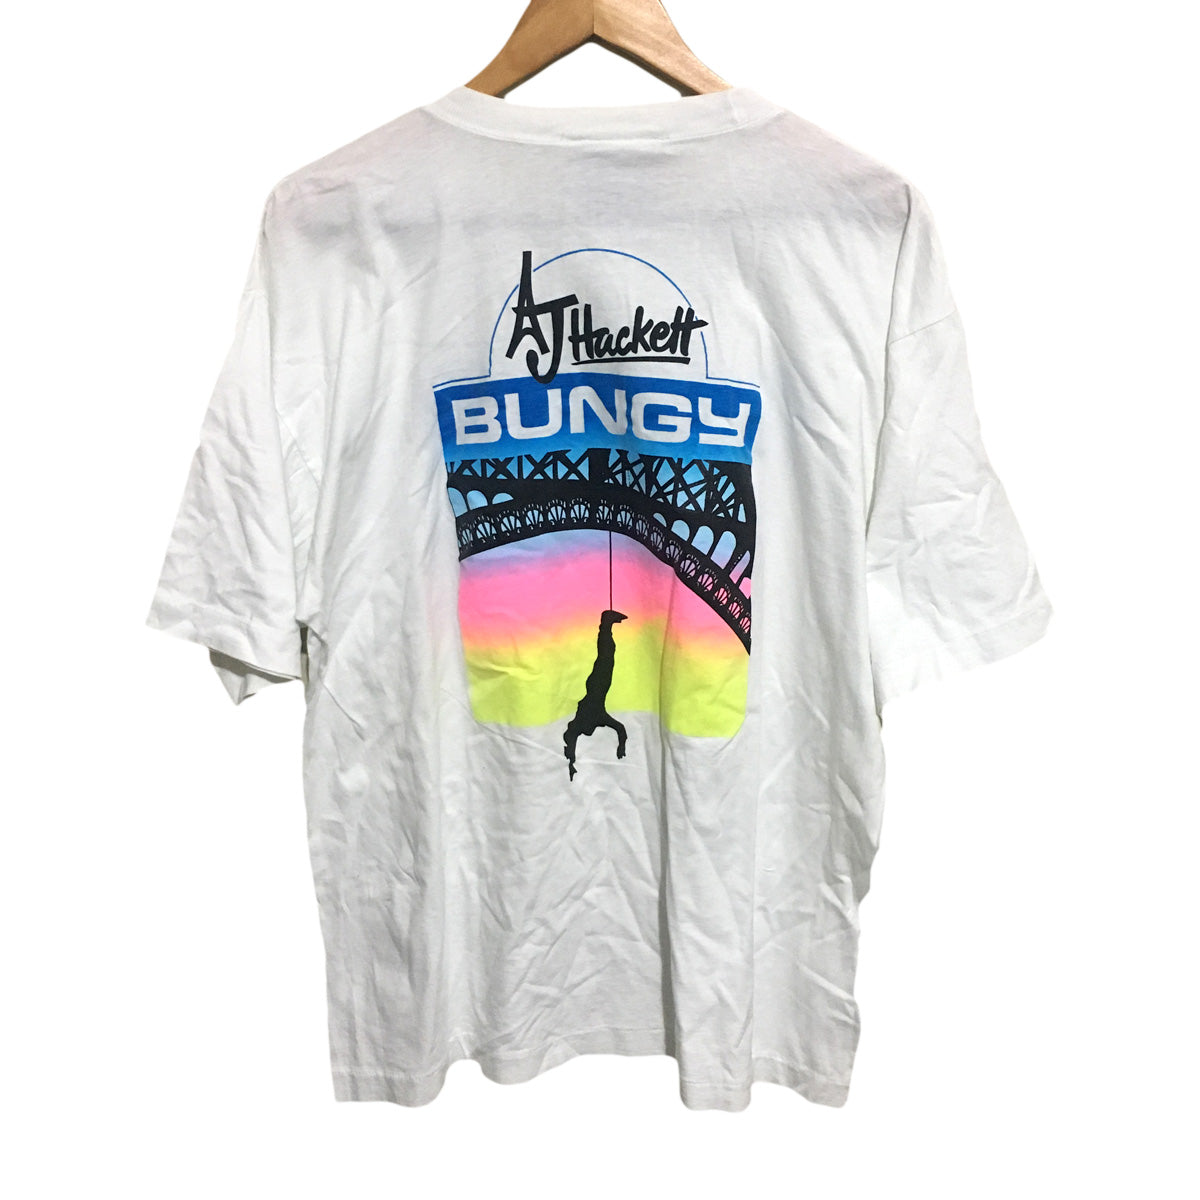 AJ Hackett Bungy Jumping Cairns T-Shirt Mens XL